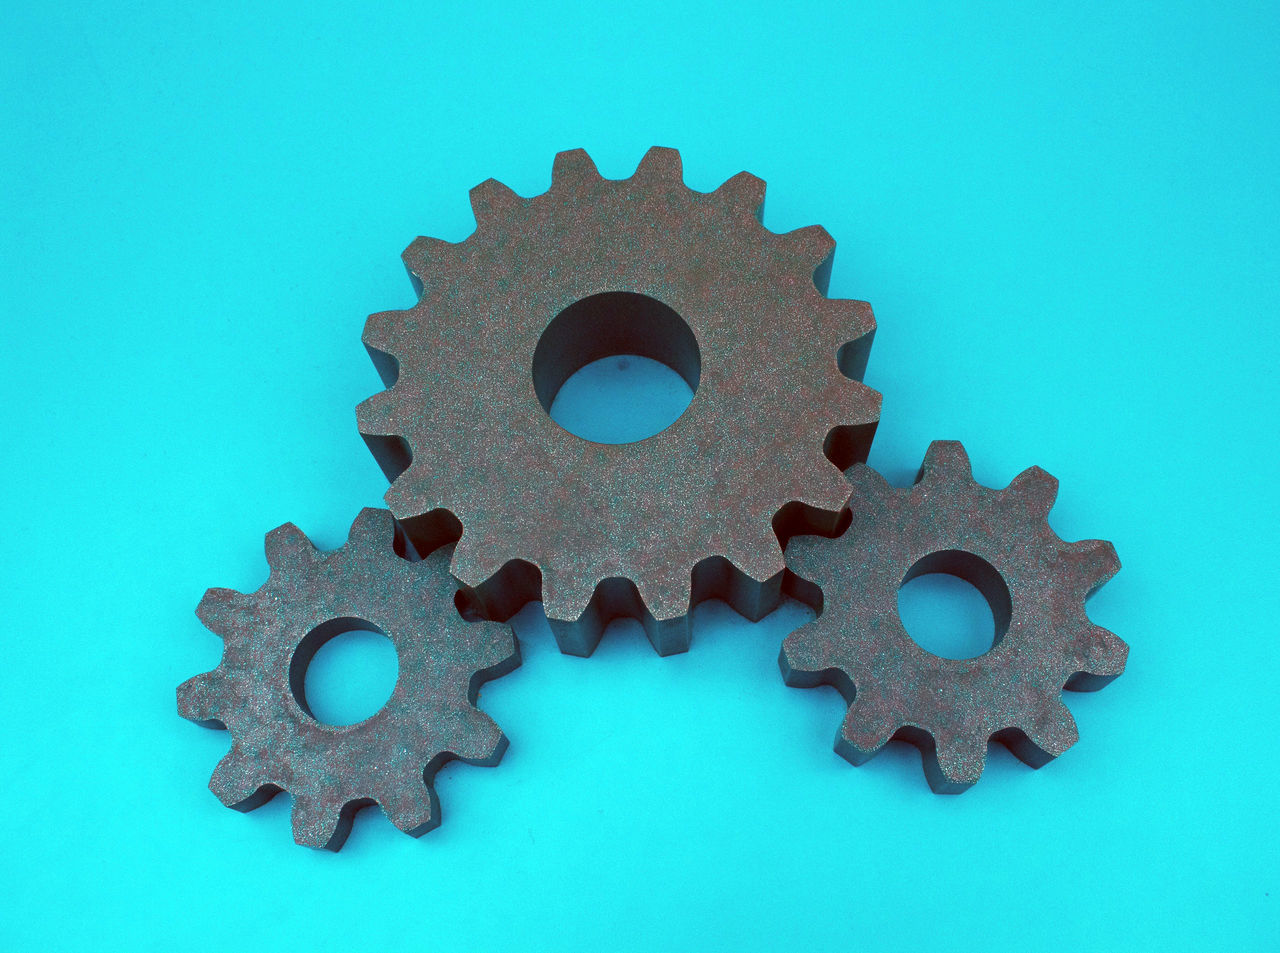 Blue Blue Background Close-up Day Jigsaw Piece Jigsaw Puzzle Metal No People Outdoors Sky Studio Shot Teamwork Technology Zahnradbahn